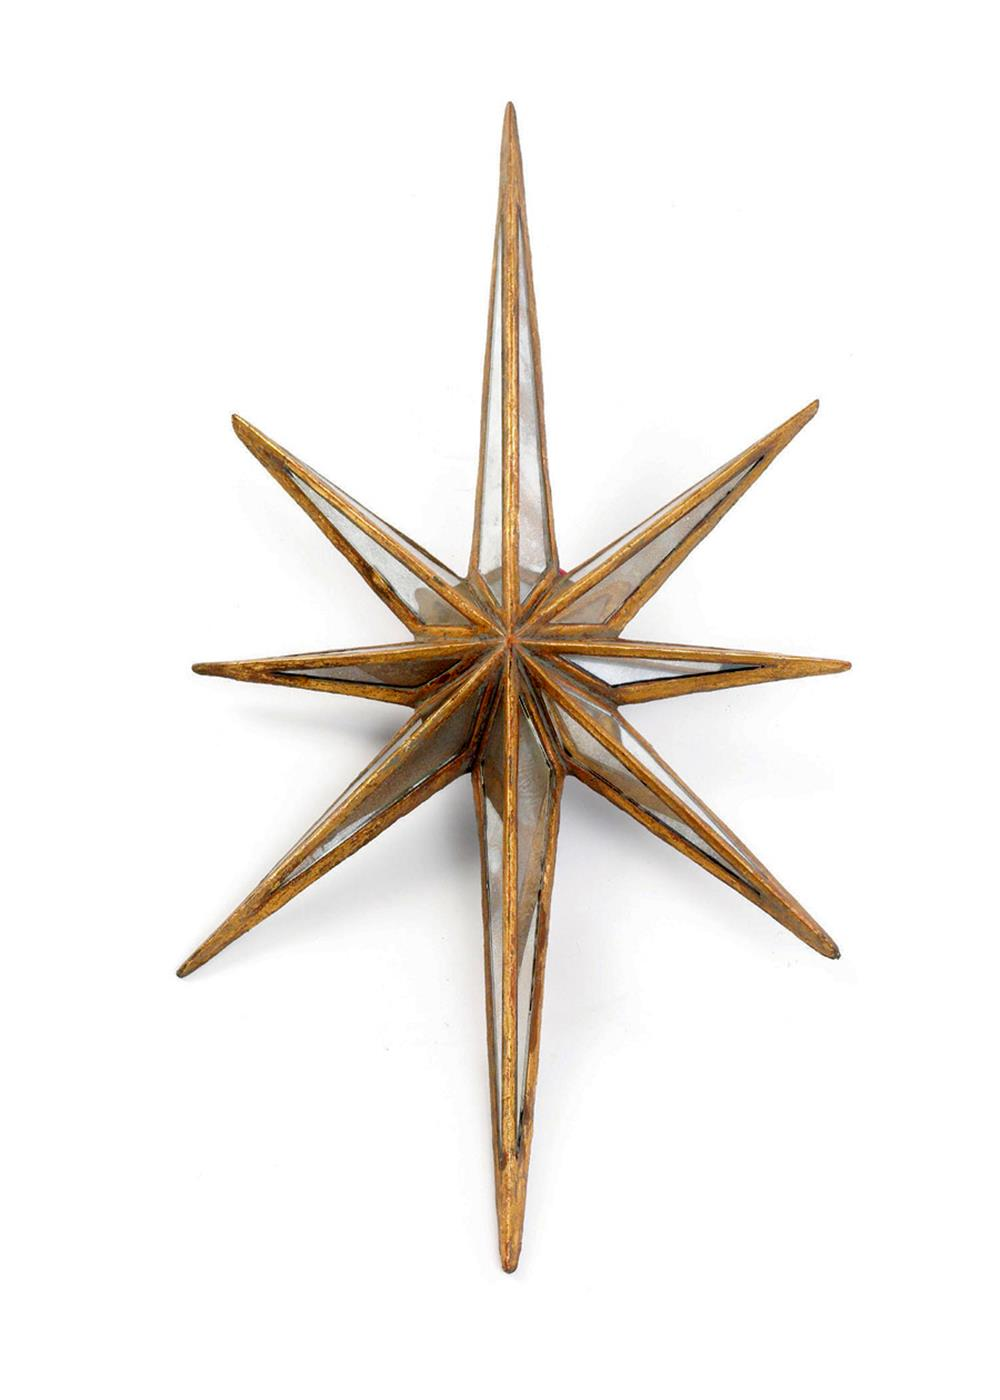 Large Antique Gold Mirror Star Burst Object Sculpture